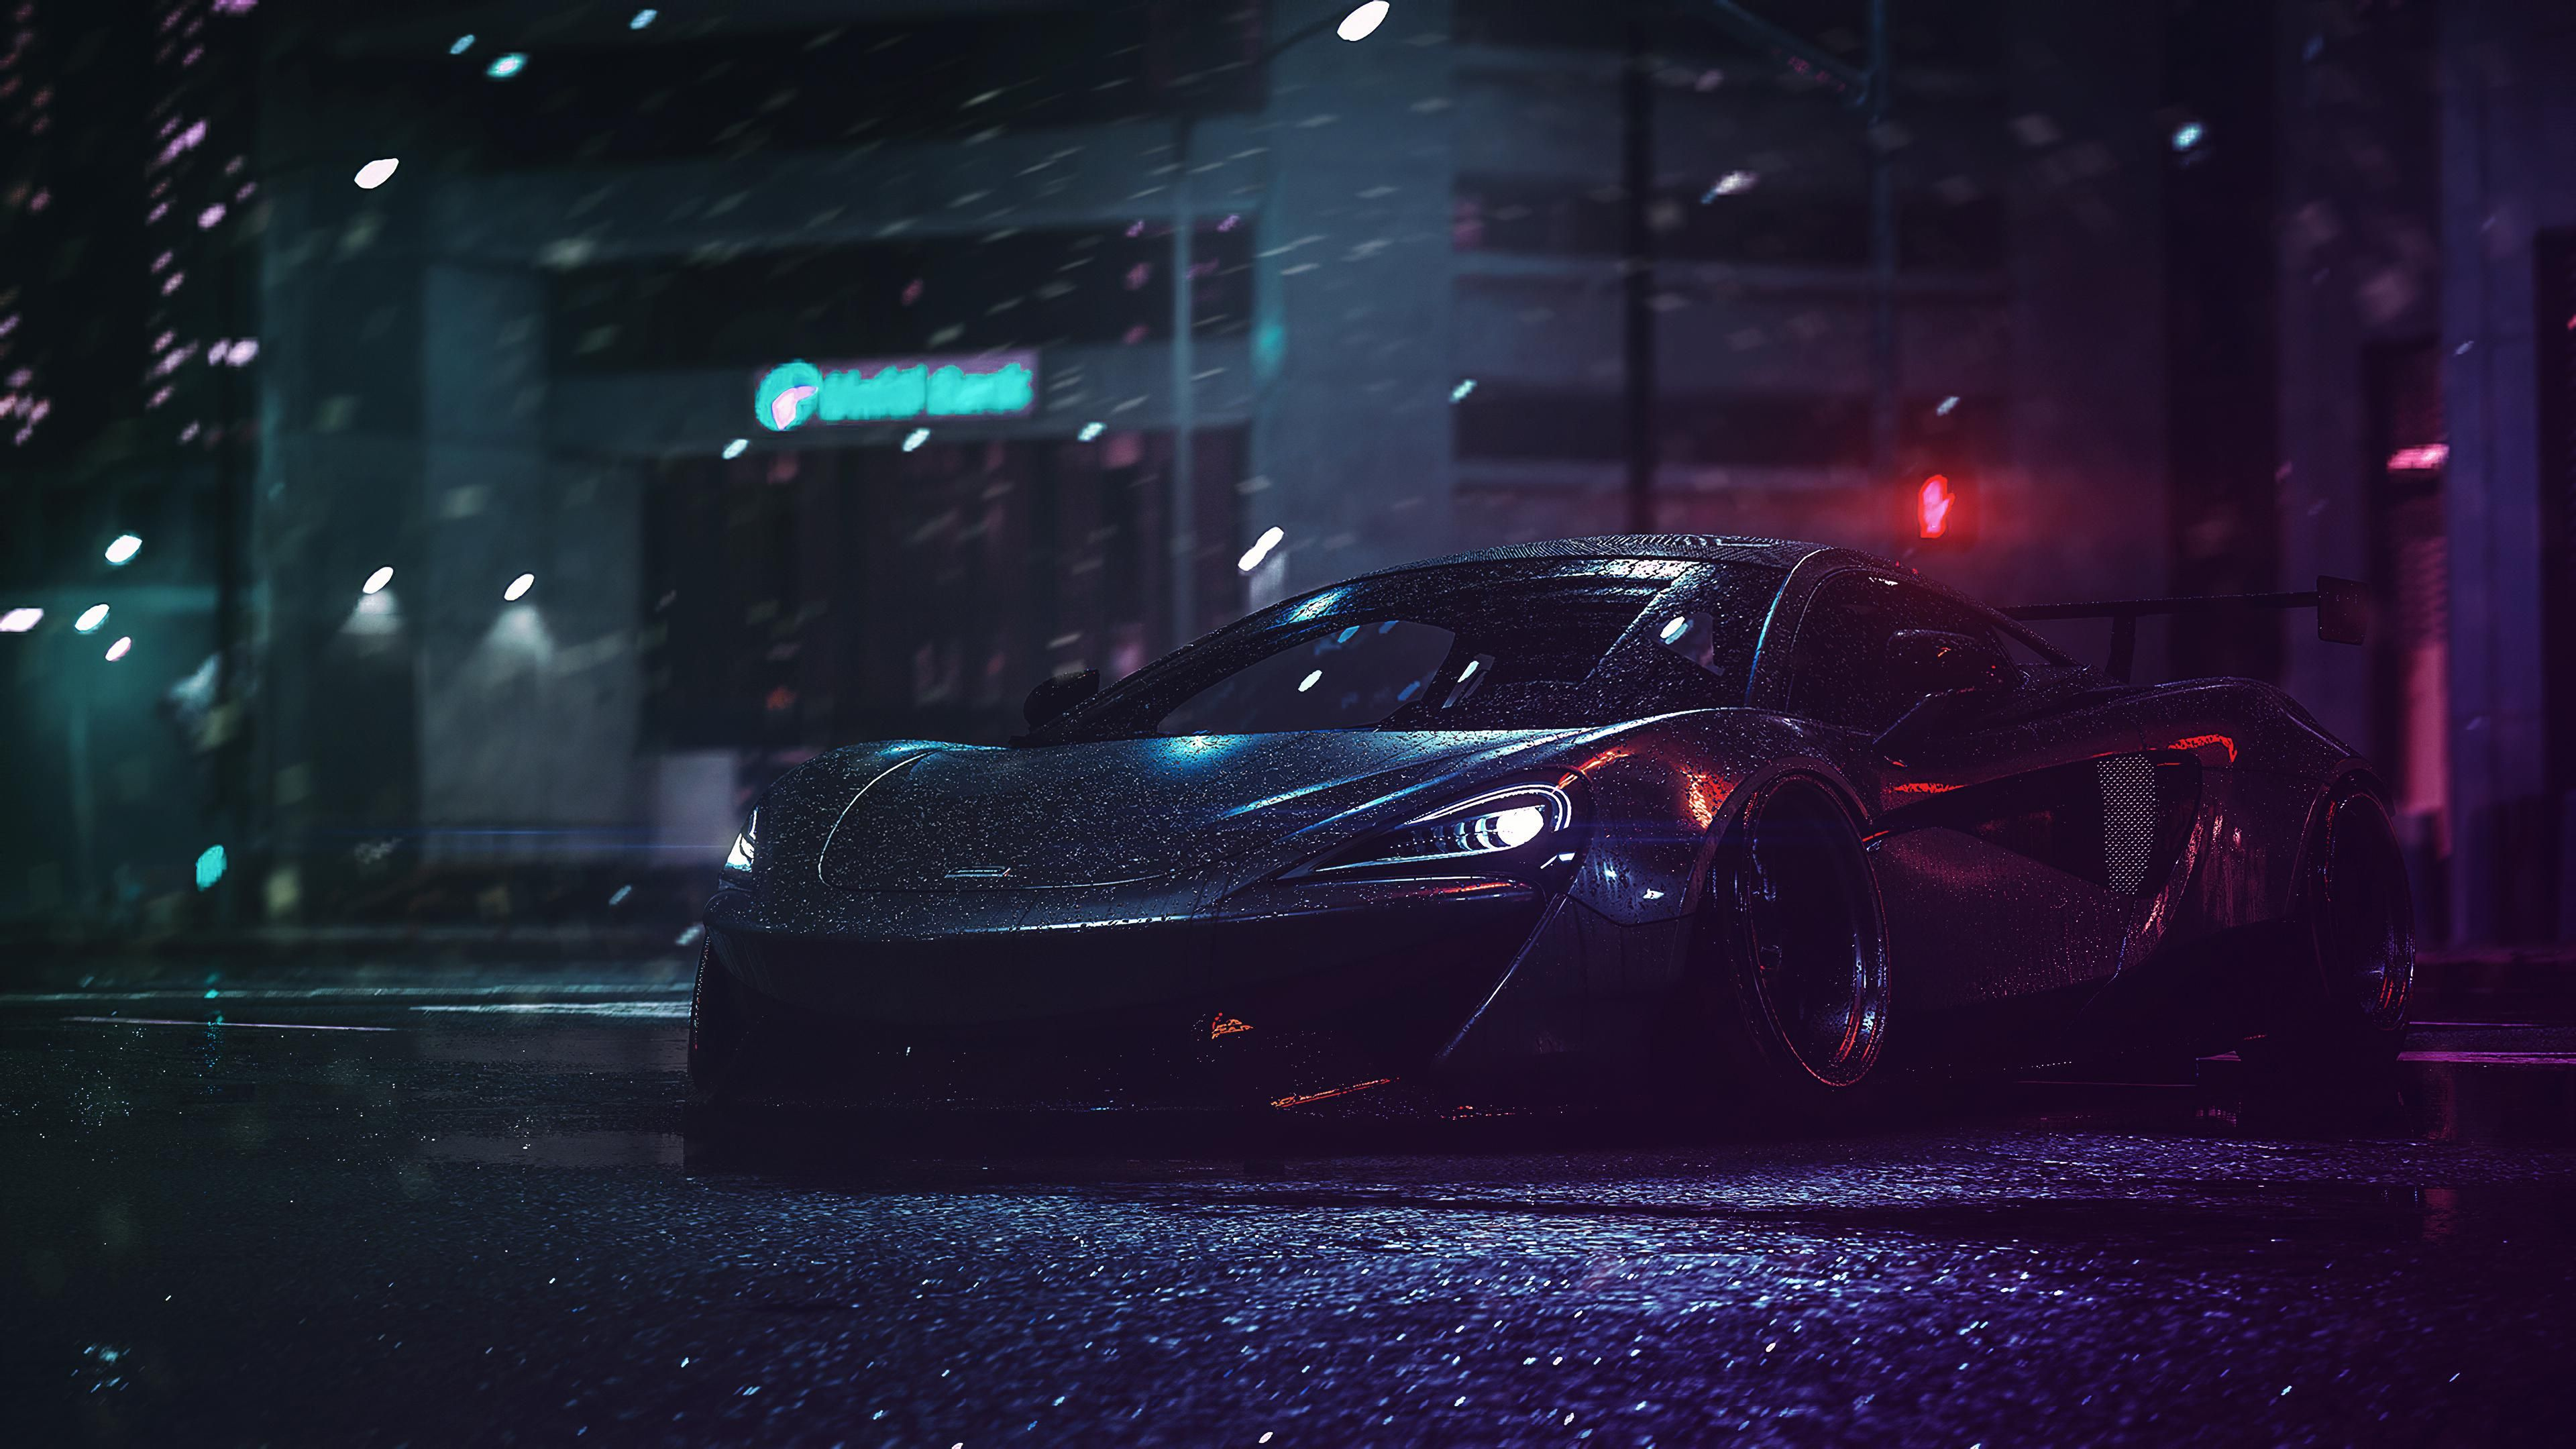 Available for hd, 4k, 5k pc, mac, desktop and mobile phones Mclaren 650s Graded By Me 3840x2160 Full Credits To U Deluxesecret In 2021 Car Wallpapers Mclaren Bmw Wallpapers